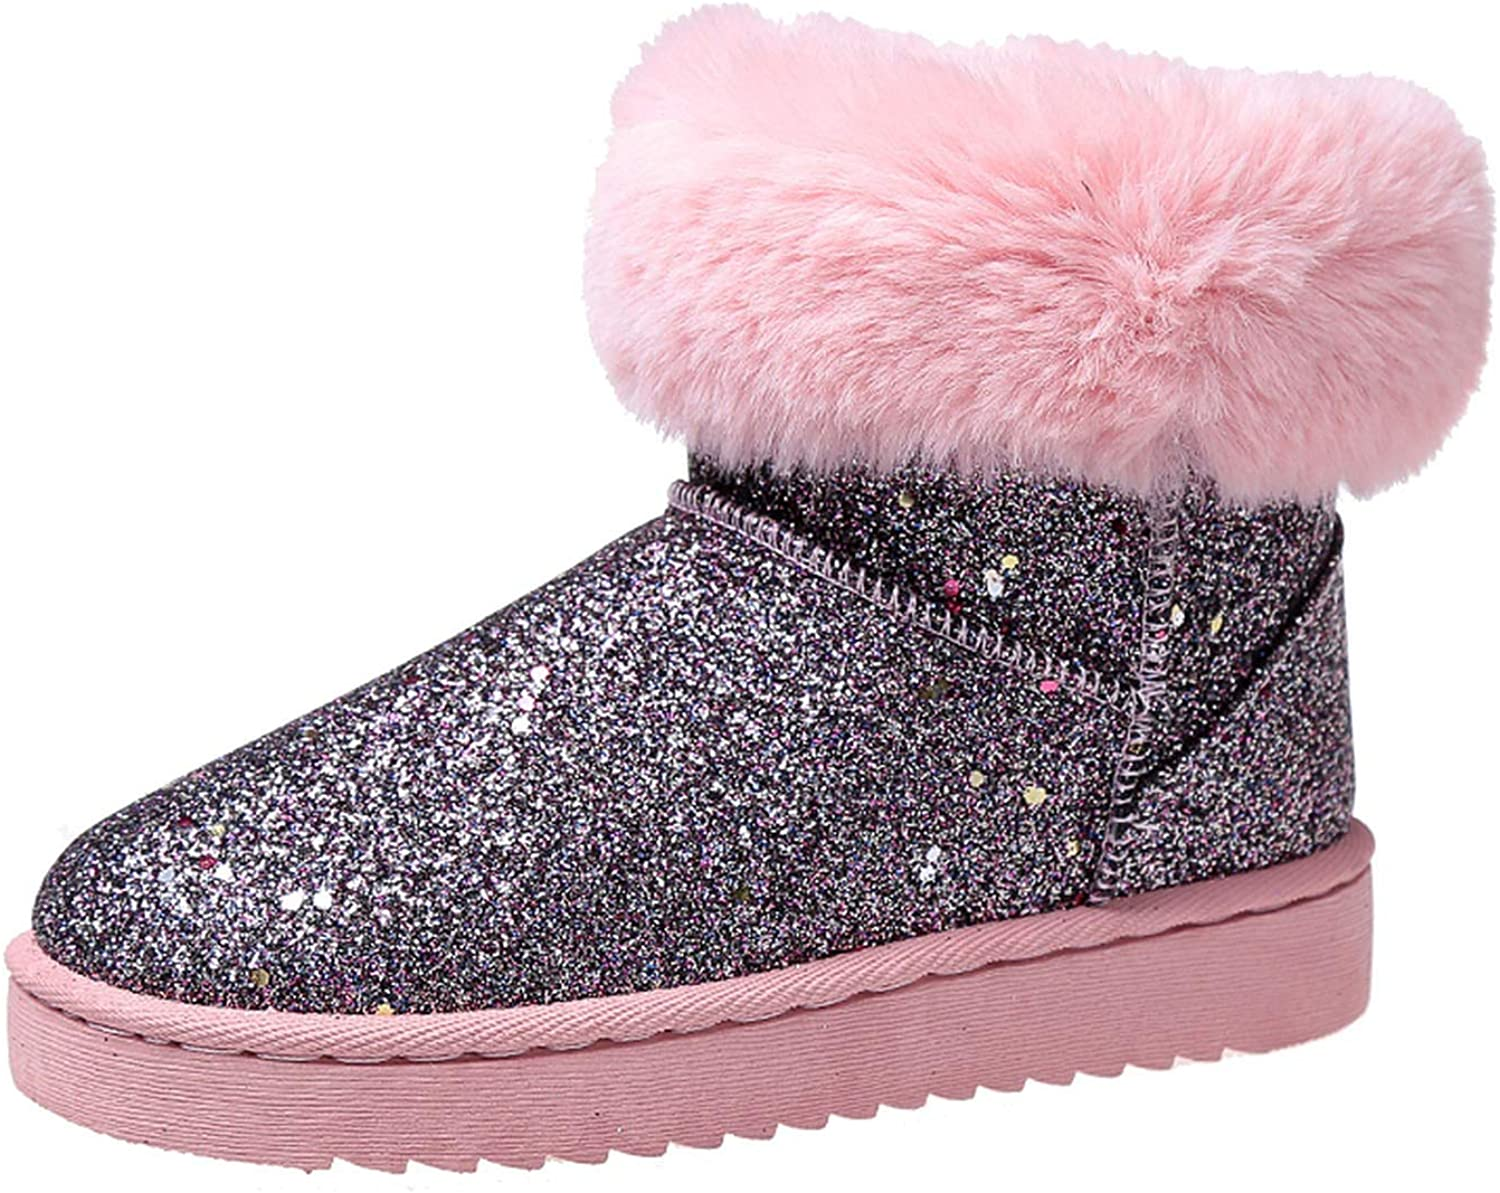 Brave pinkmary Winter Bling Glitter Snow Boots Women Sequined Short Plush Ankle Boots Casual Slip-On Fuax Fur Warm Woman Boots